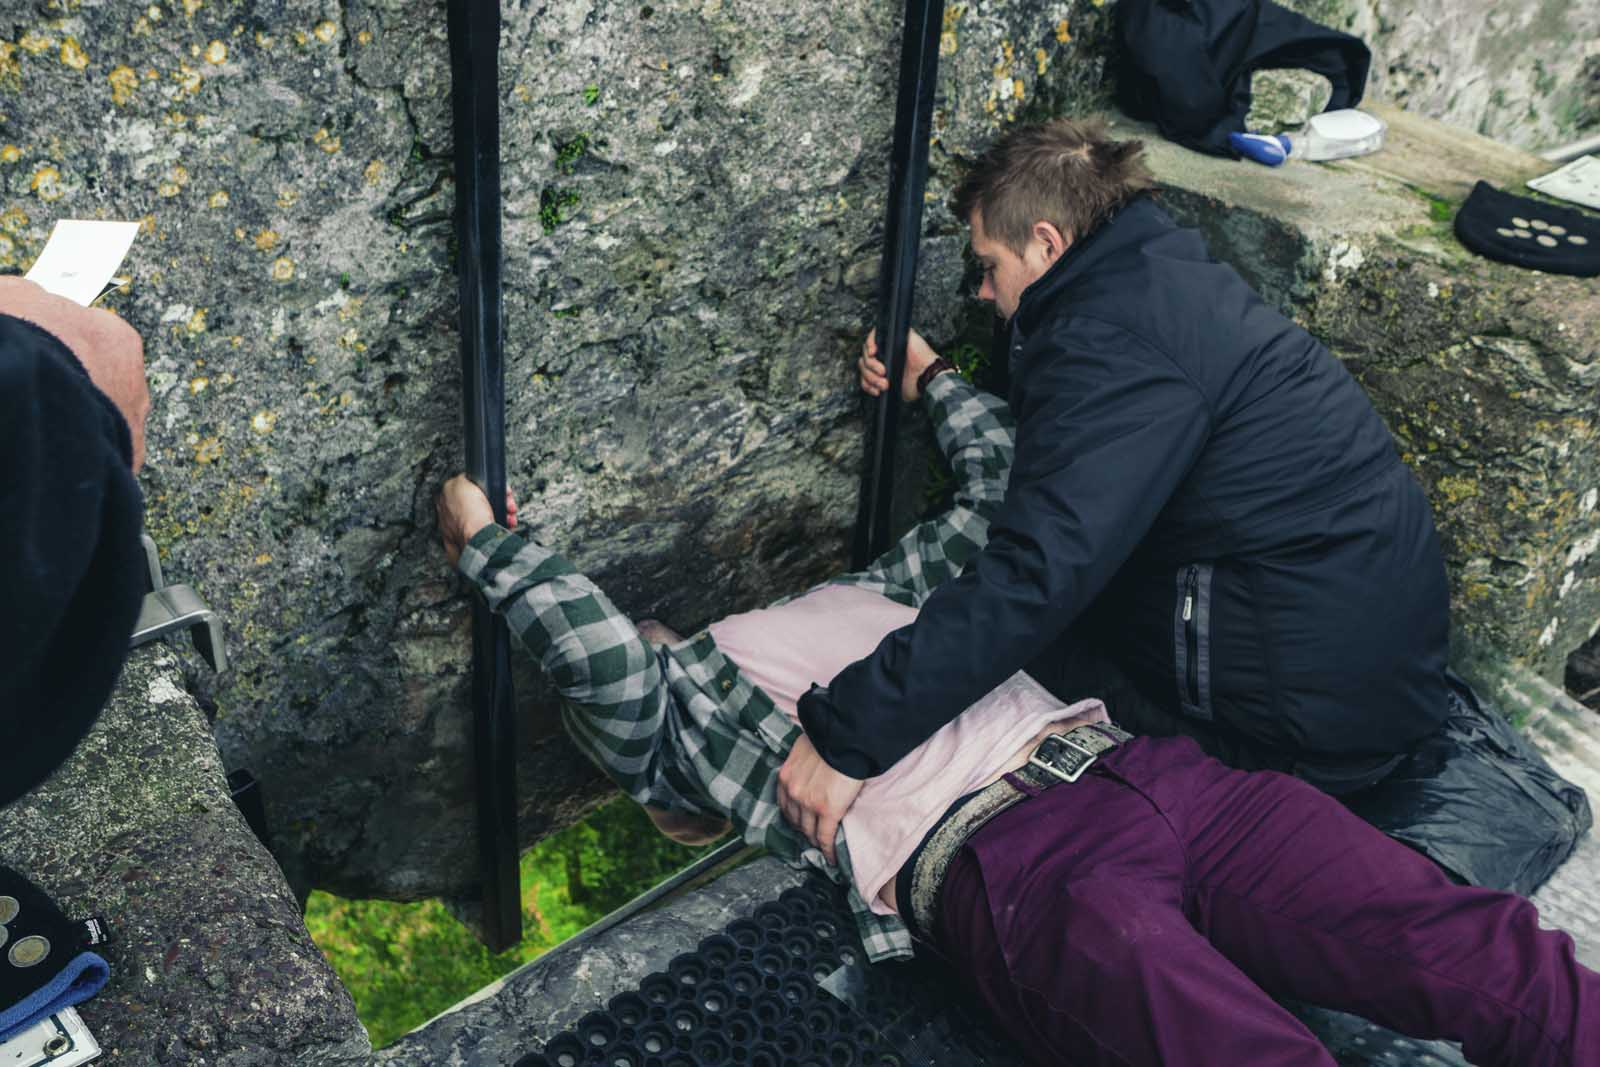 Scott kissing the Blarney Stone near Cork Ireland